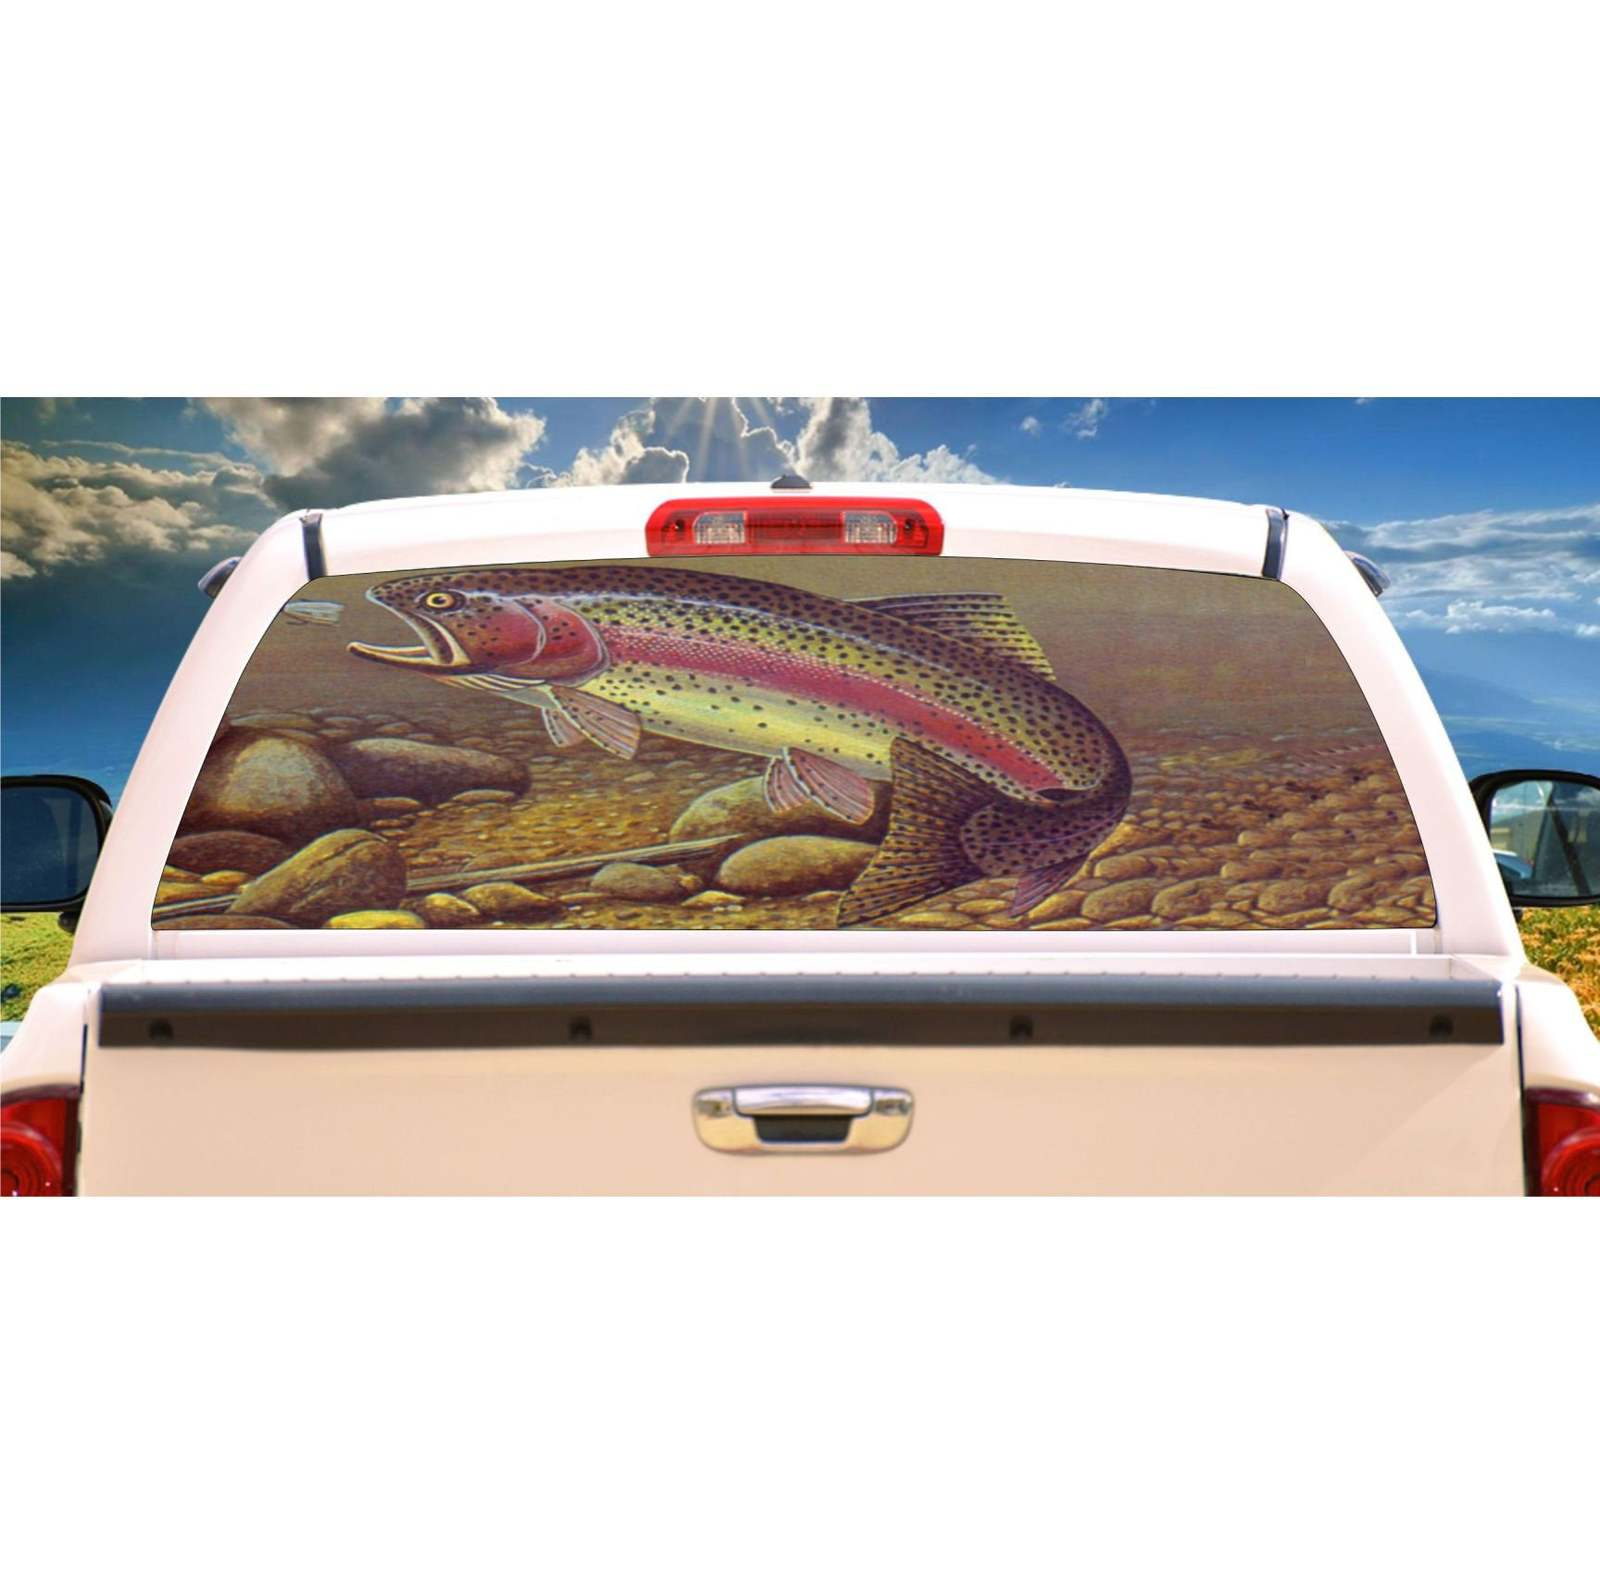 Trout Fishing Rear Window Mural, Decal, or Tint for rear window in Truck, RV, Ca - $77.99